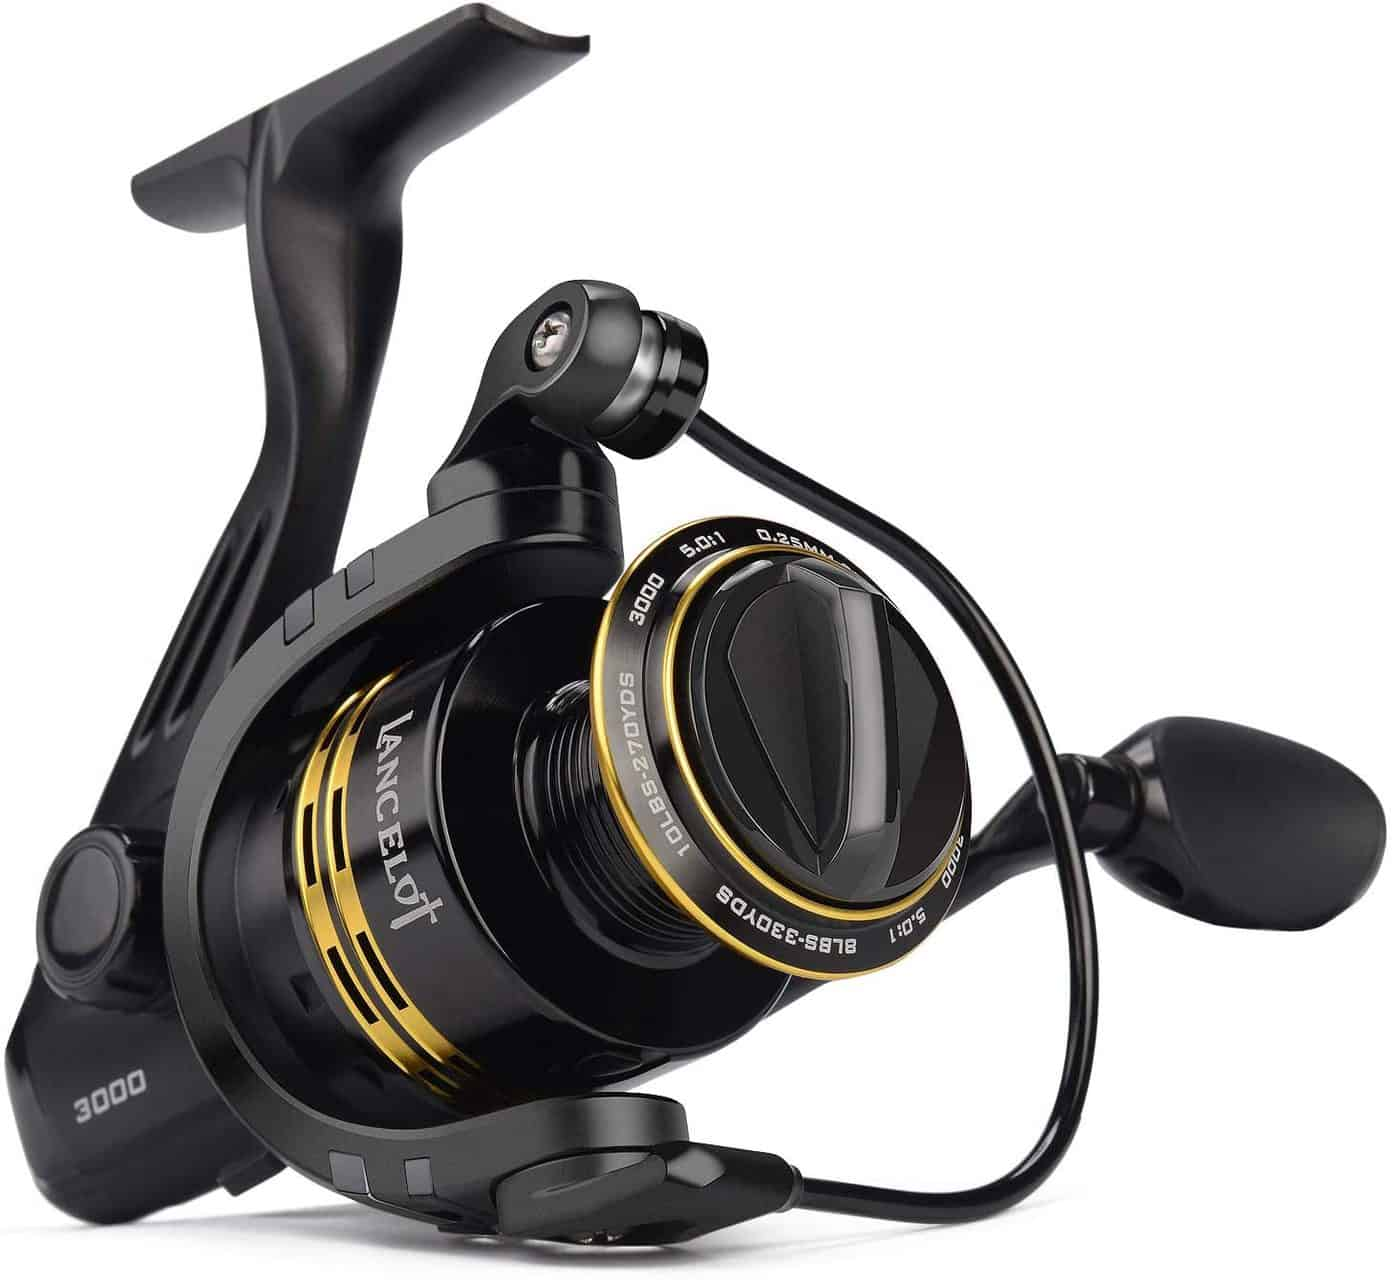 Lancelot Spinning Reel by KastKing